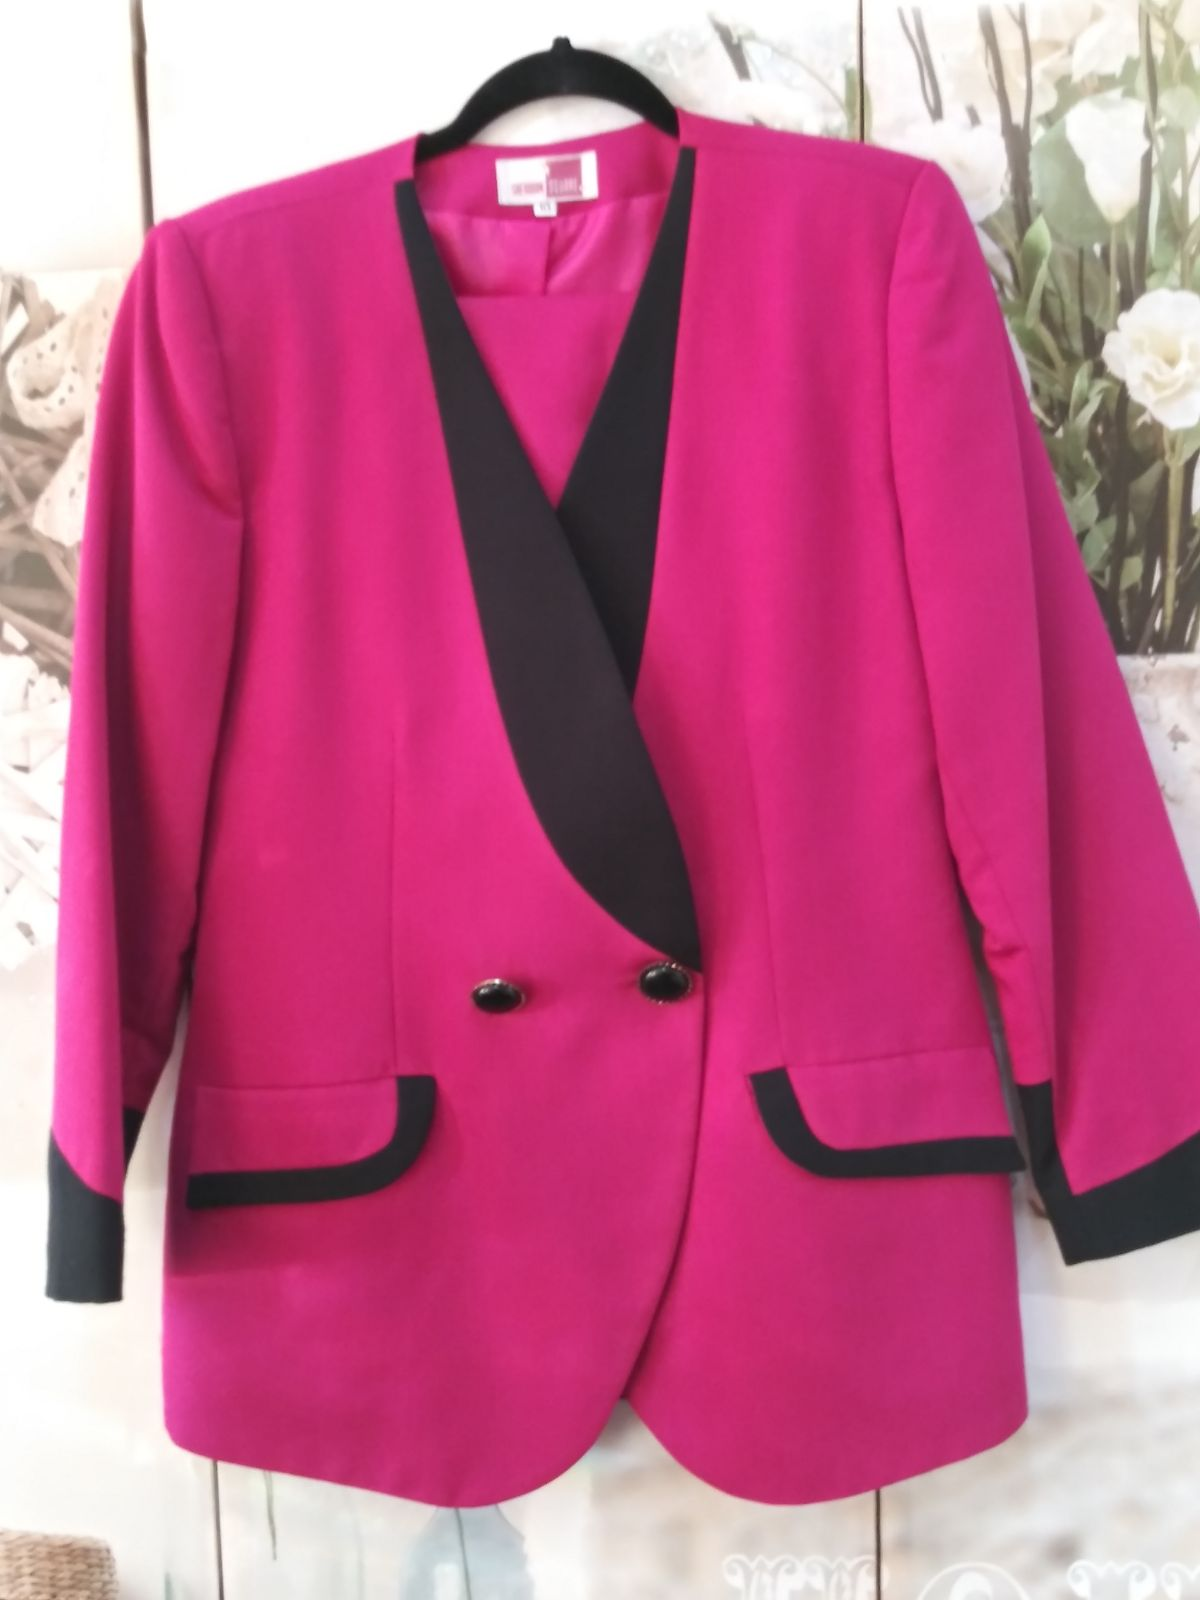 Skirt Suit by Sheridan Square Sz. 10 NWO